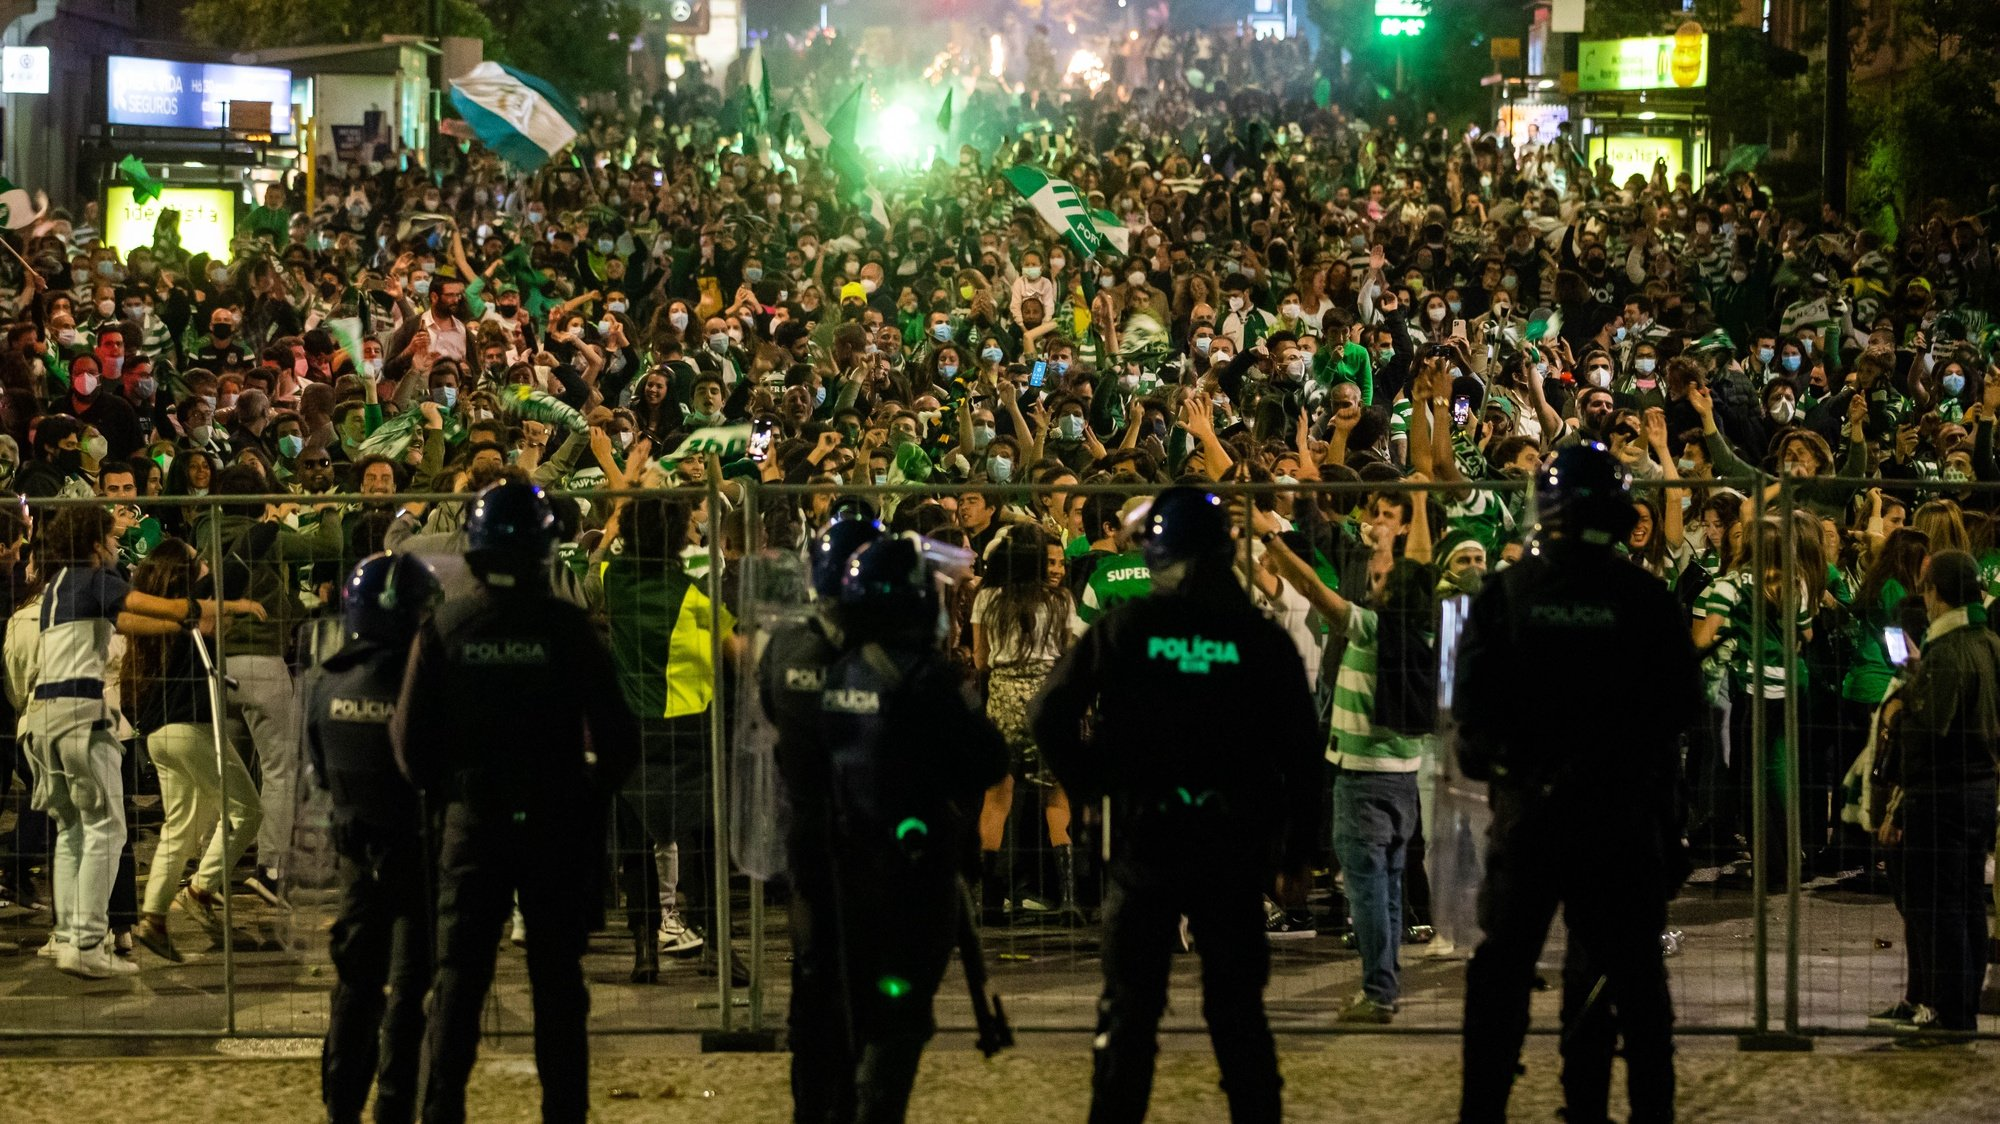 Police oficcers stand by as Sporting supporters are held behind fences as they celebrate the First League Soccer title at Marques do Pombal square, in Lisbon, Portugal, 11th May 2021. Sporting has been chasing this trophy since the 2001/02 season. JOSE SENA GOULAO/LUSA